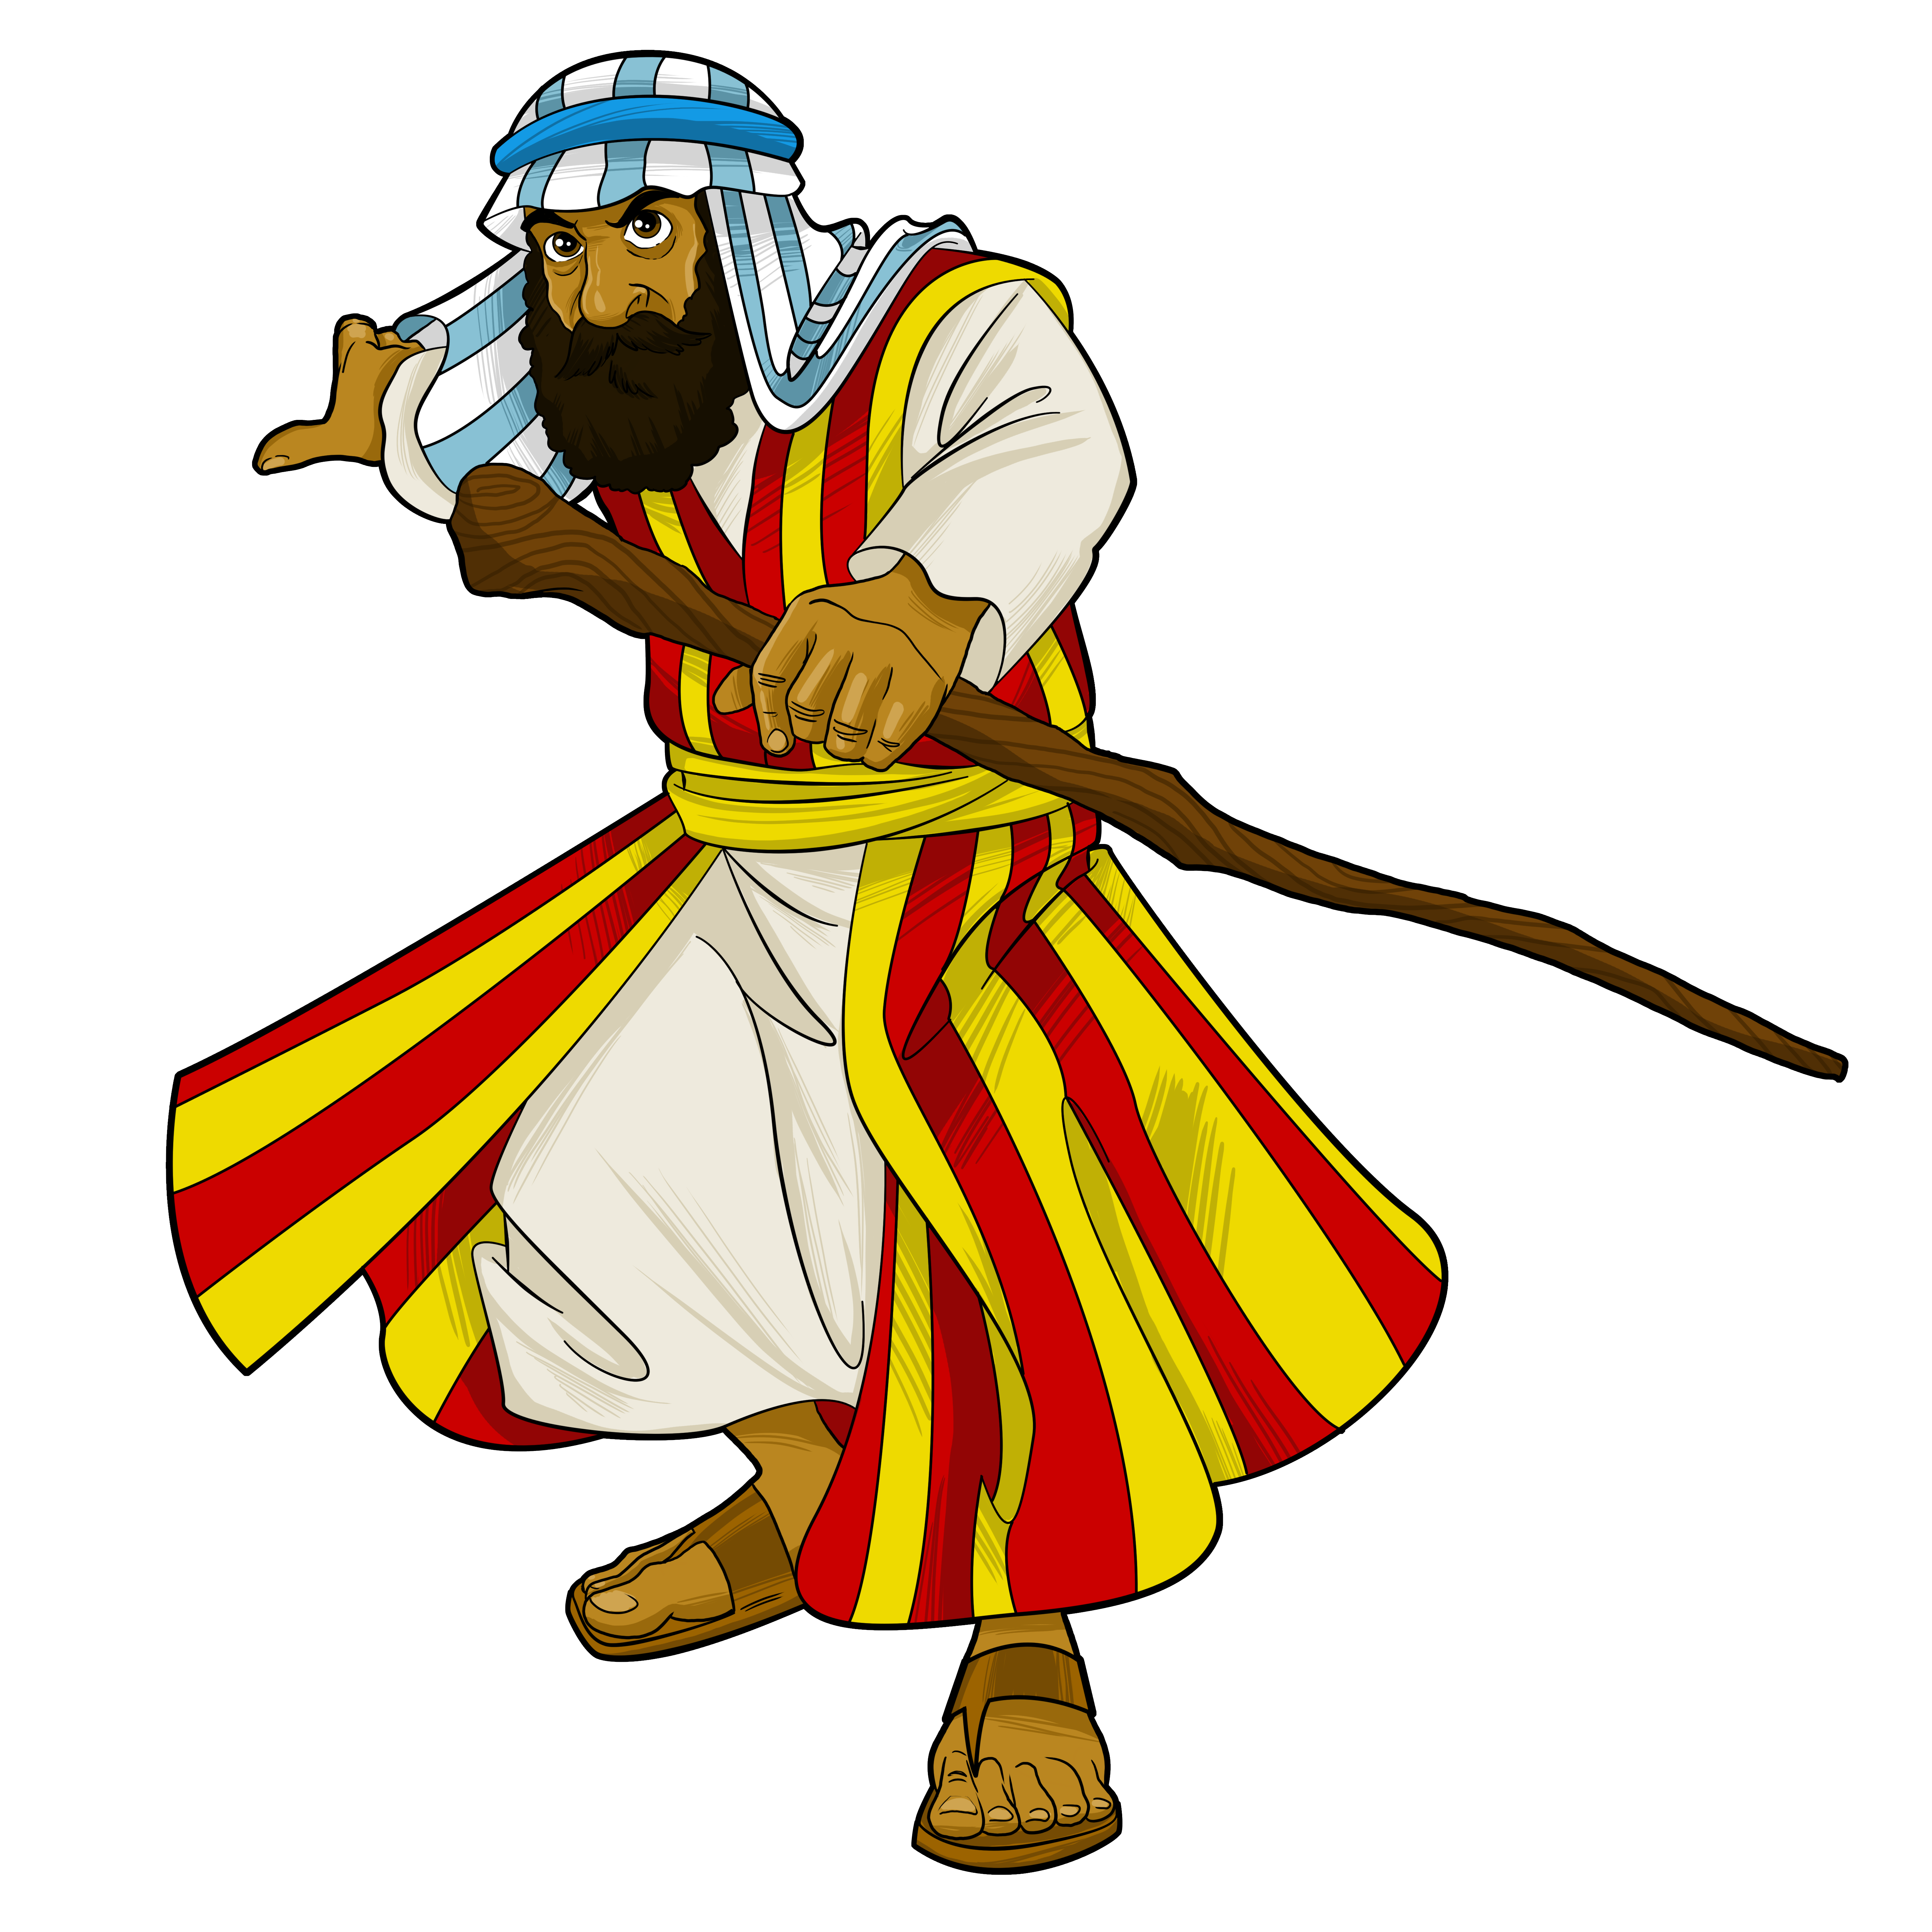 clipart transparent download Collection of free download. Moses clipart bible lesson.